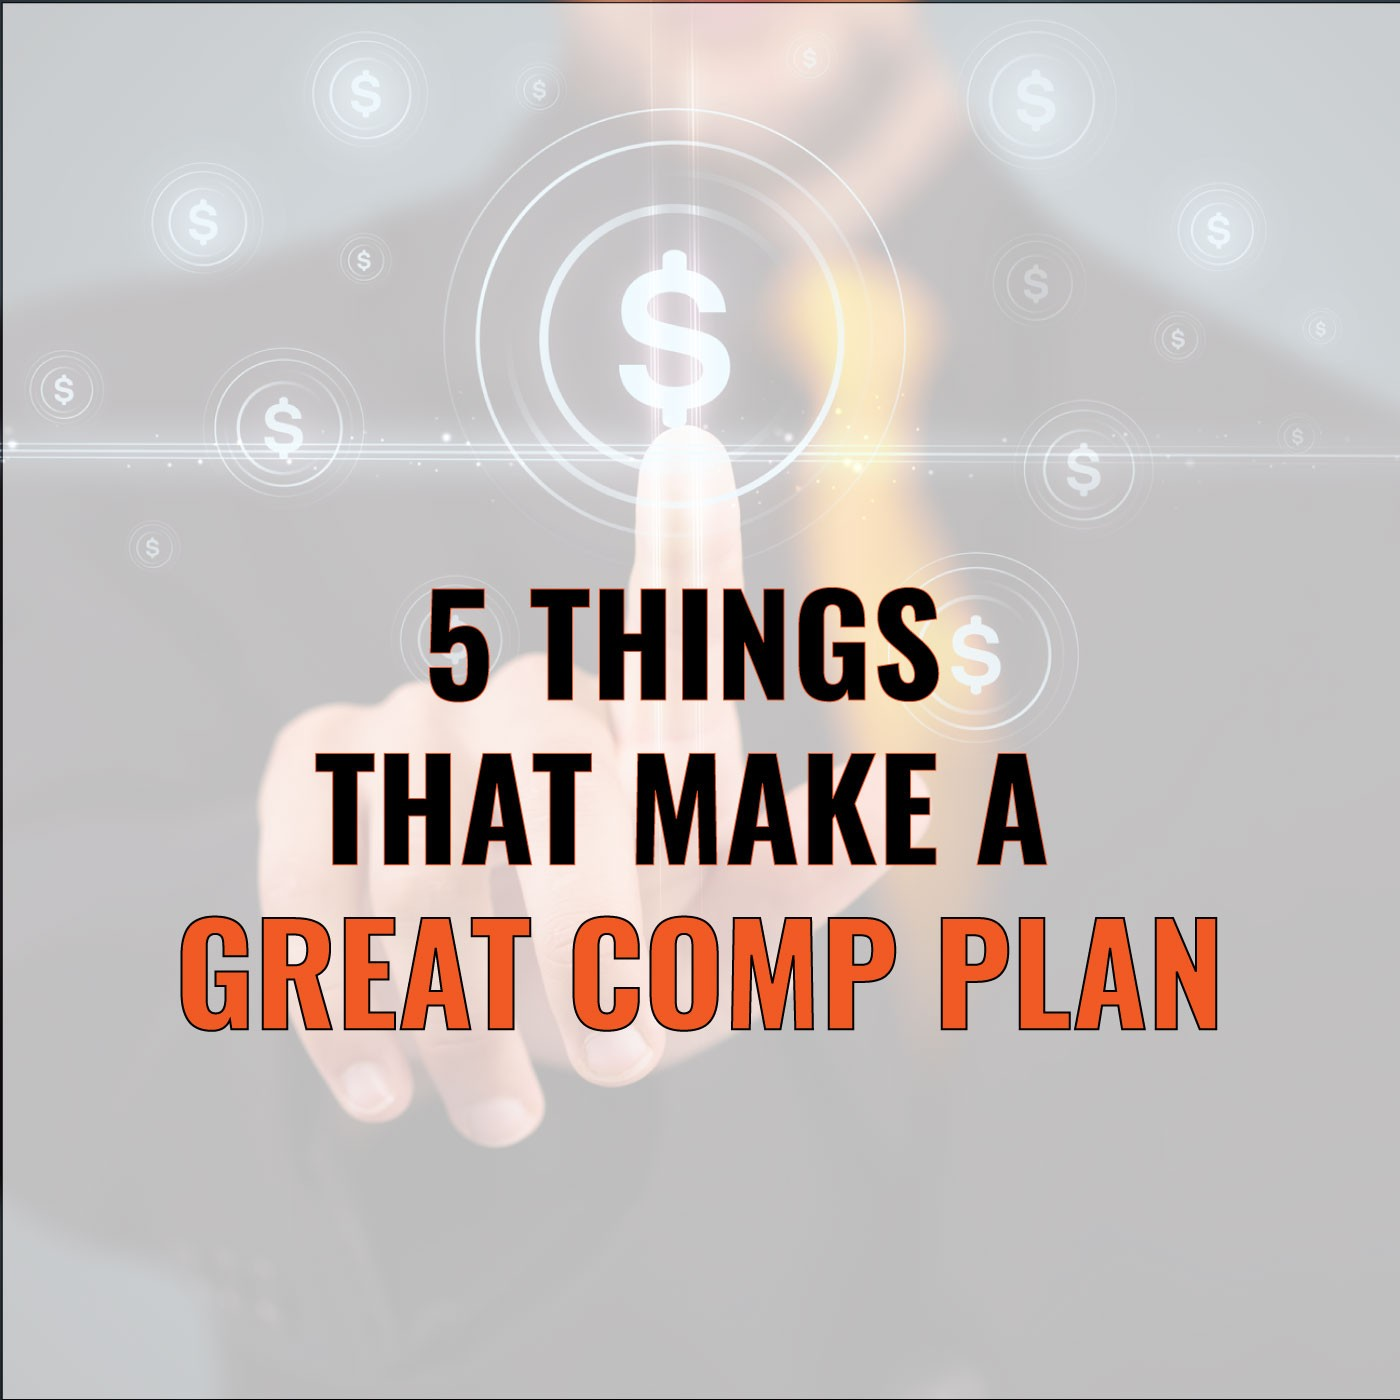 Brian Burns on 5 Things That Make a Great Comp Plan